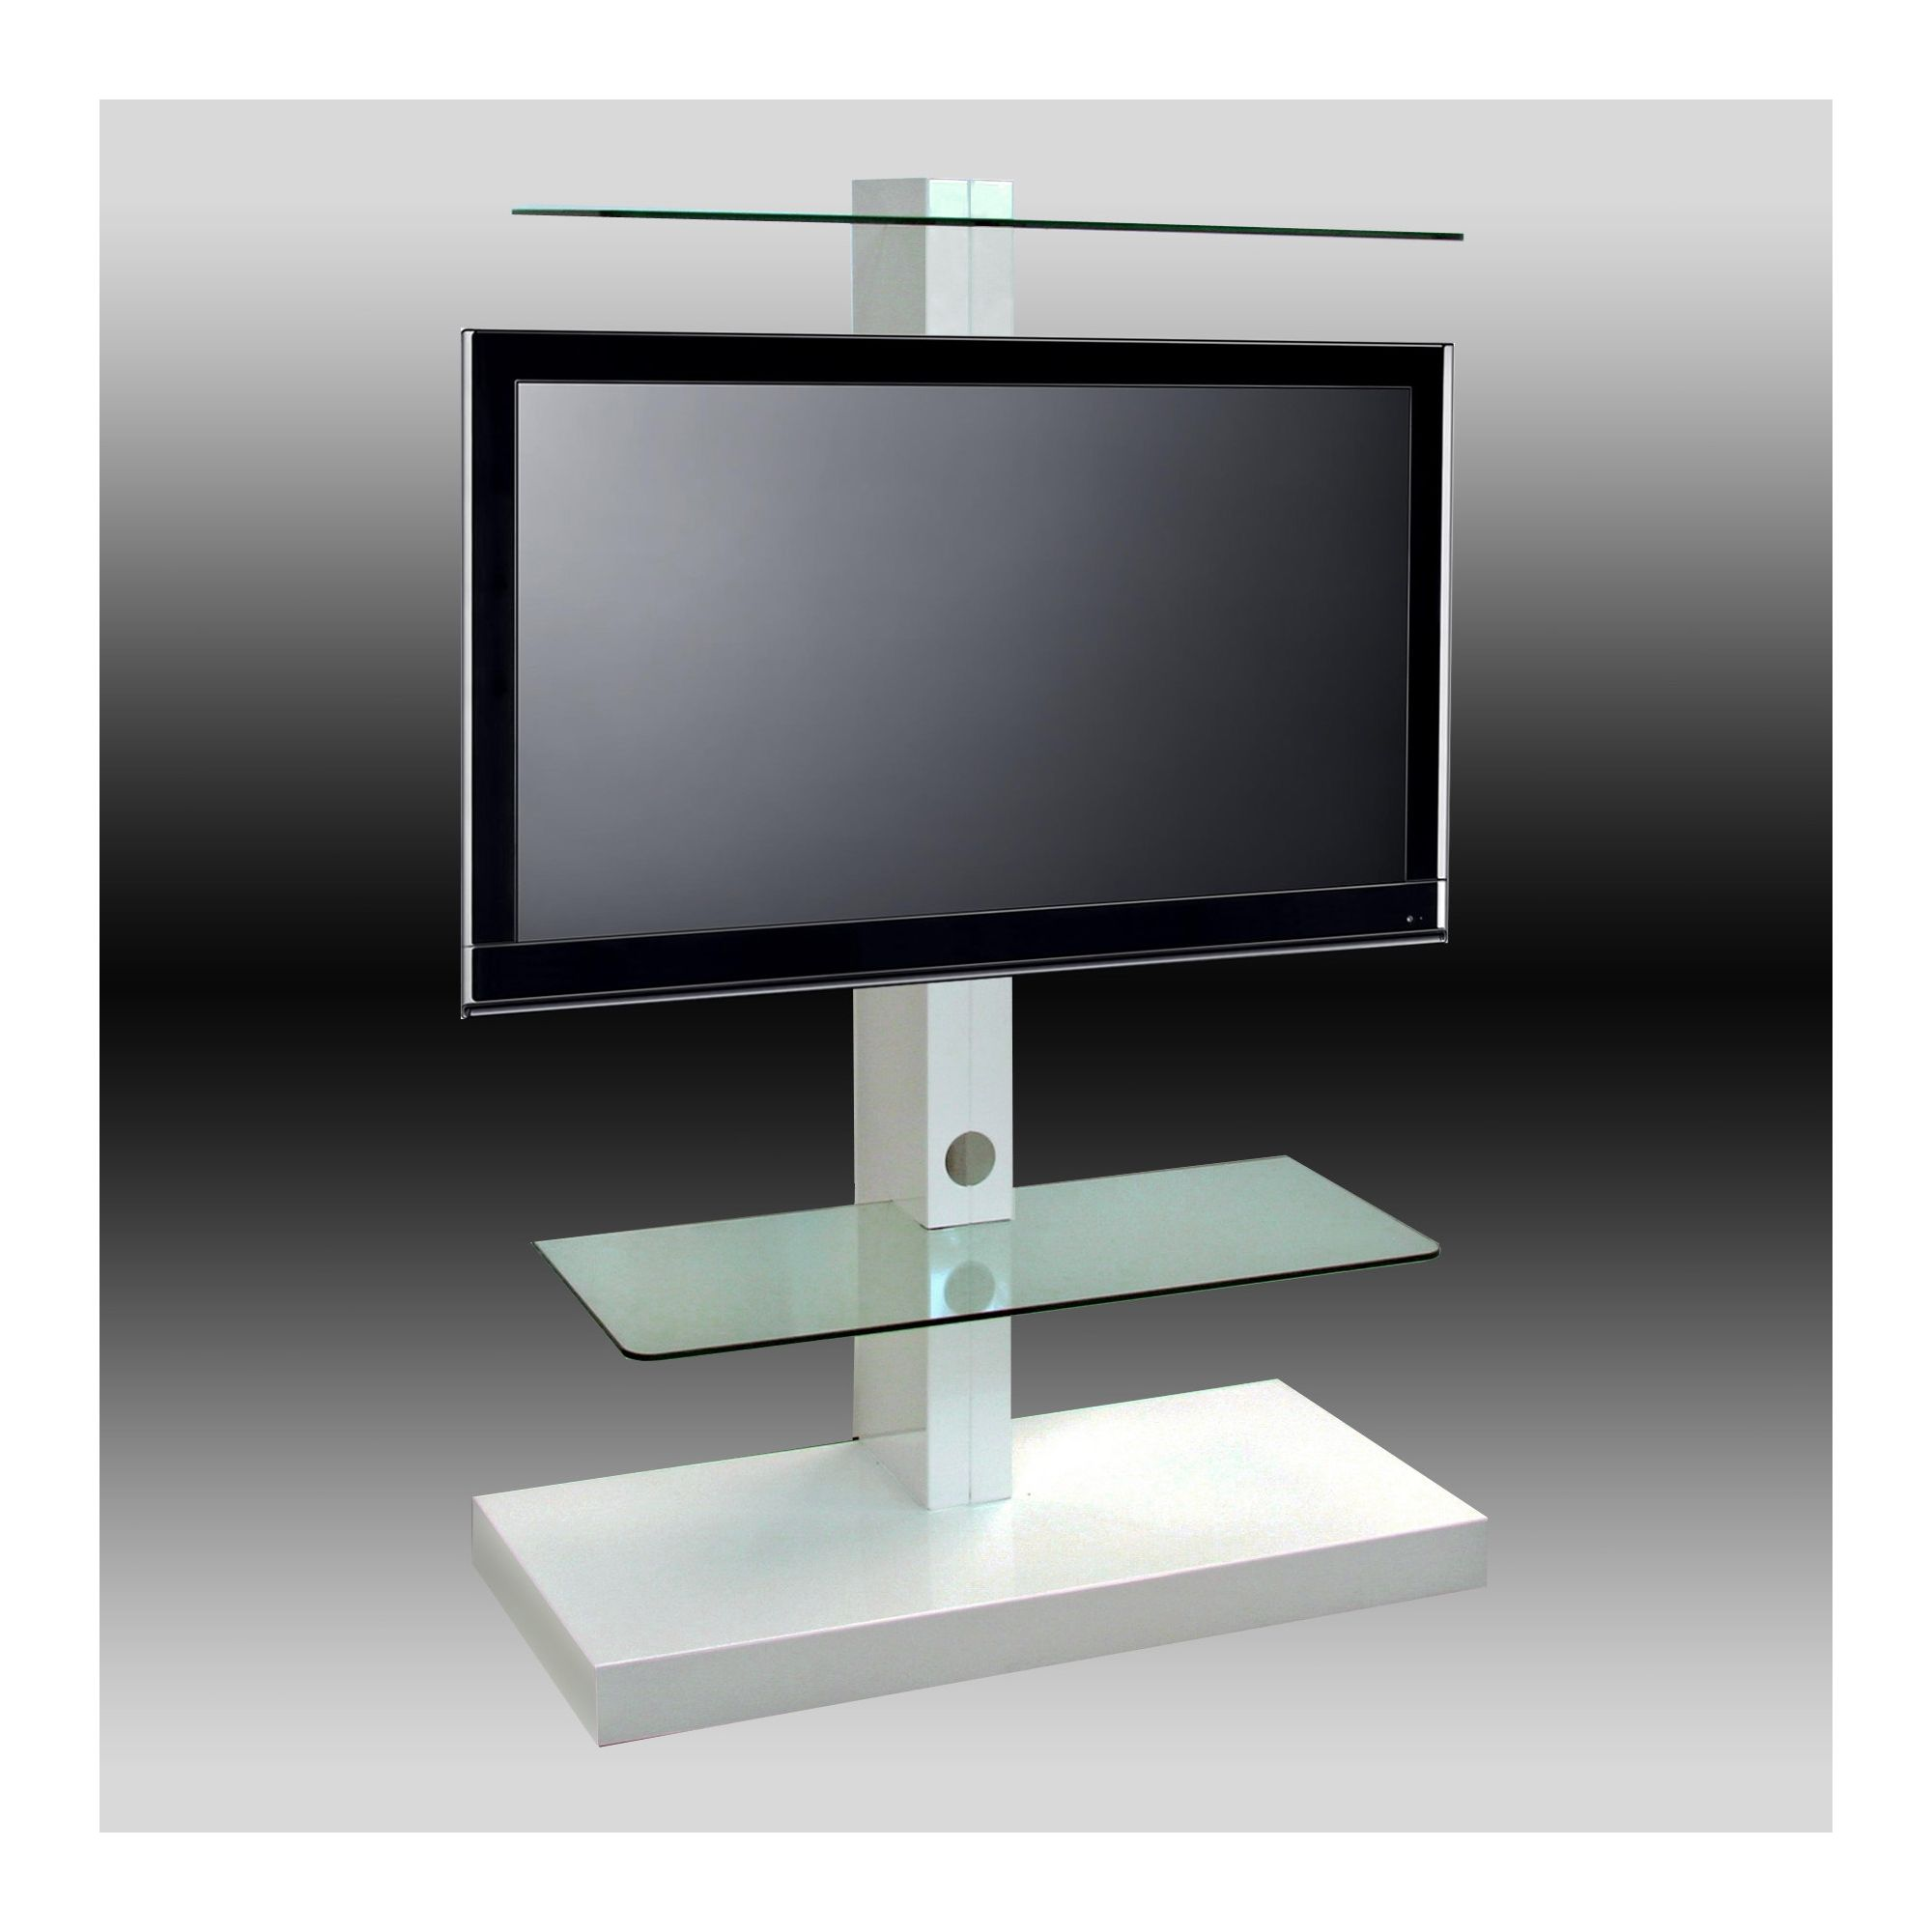 OMB Jolly Tower 2 TV Stand - White at Tesco Direct